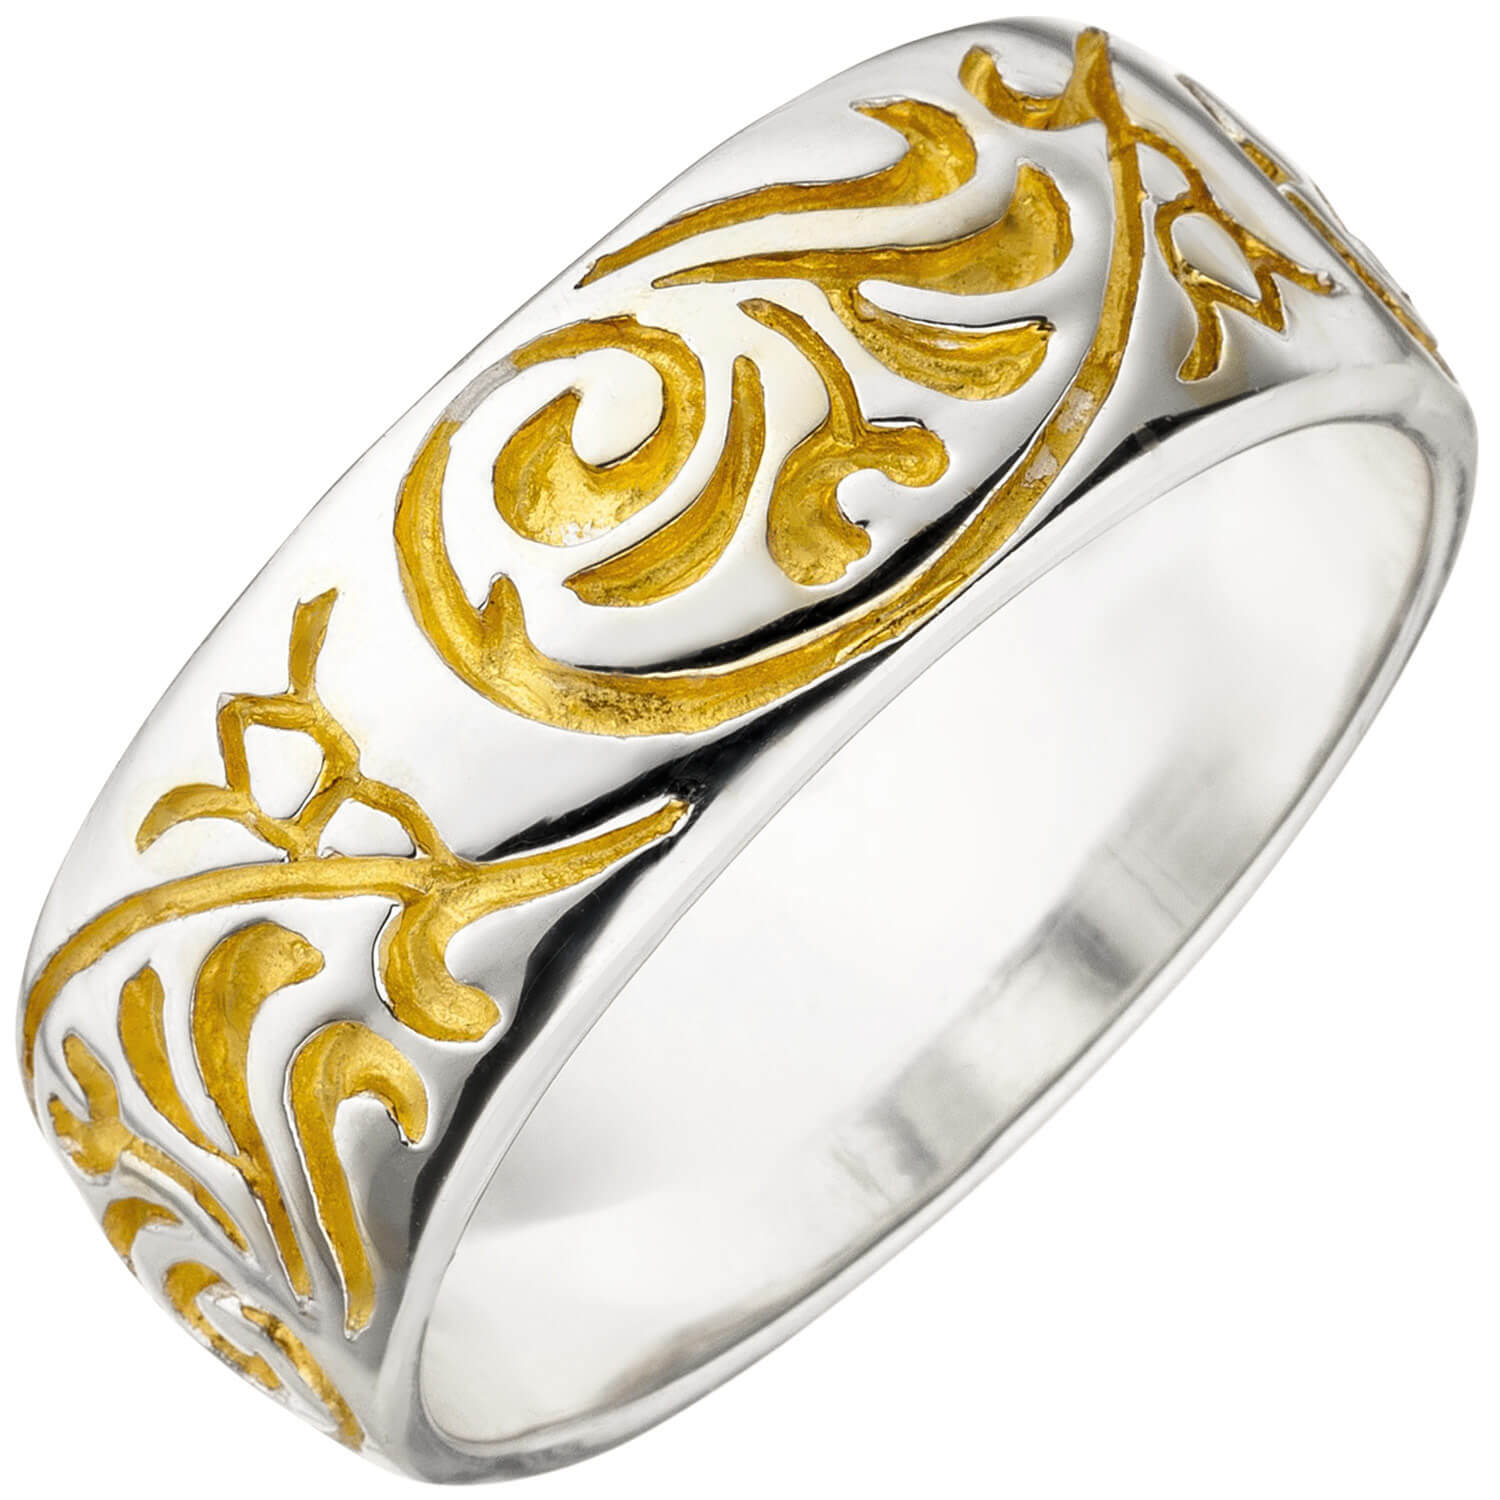 Ring Damenring Mit Ornament Muster 925 Silber